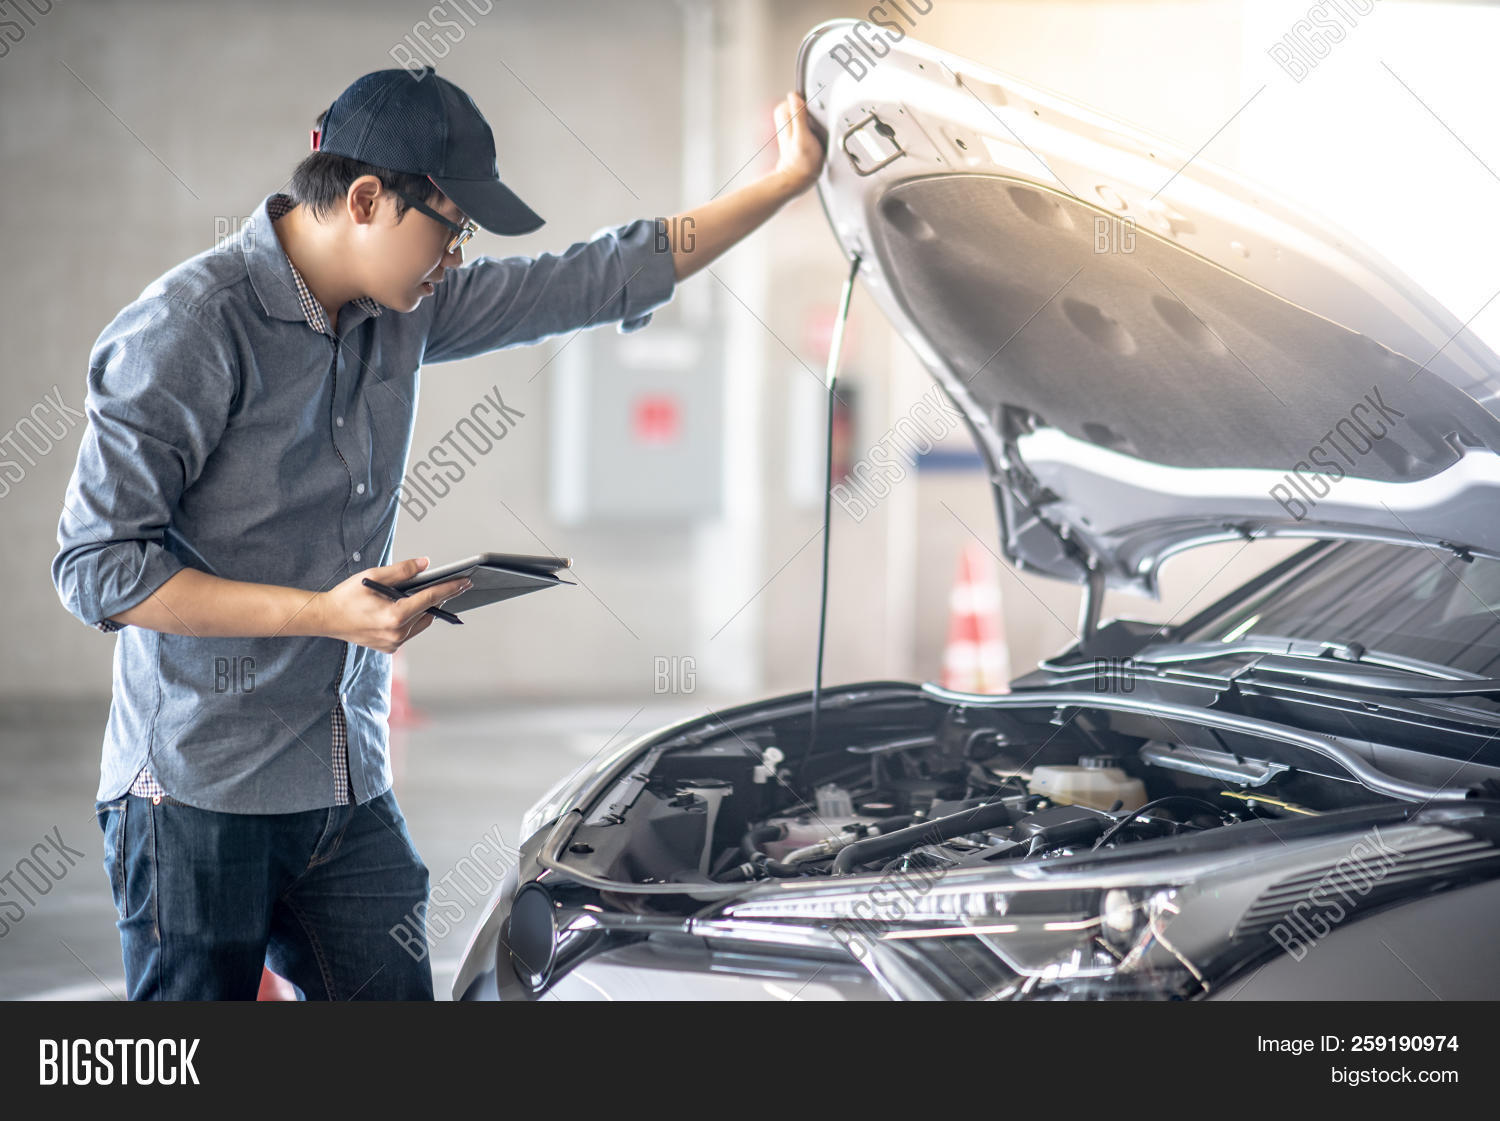 Asian Auto Mechanic Holding Digital Tablet Checking Car Engine Under The Hood In Auto Service Garage